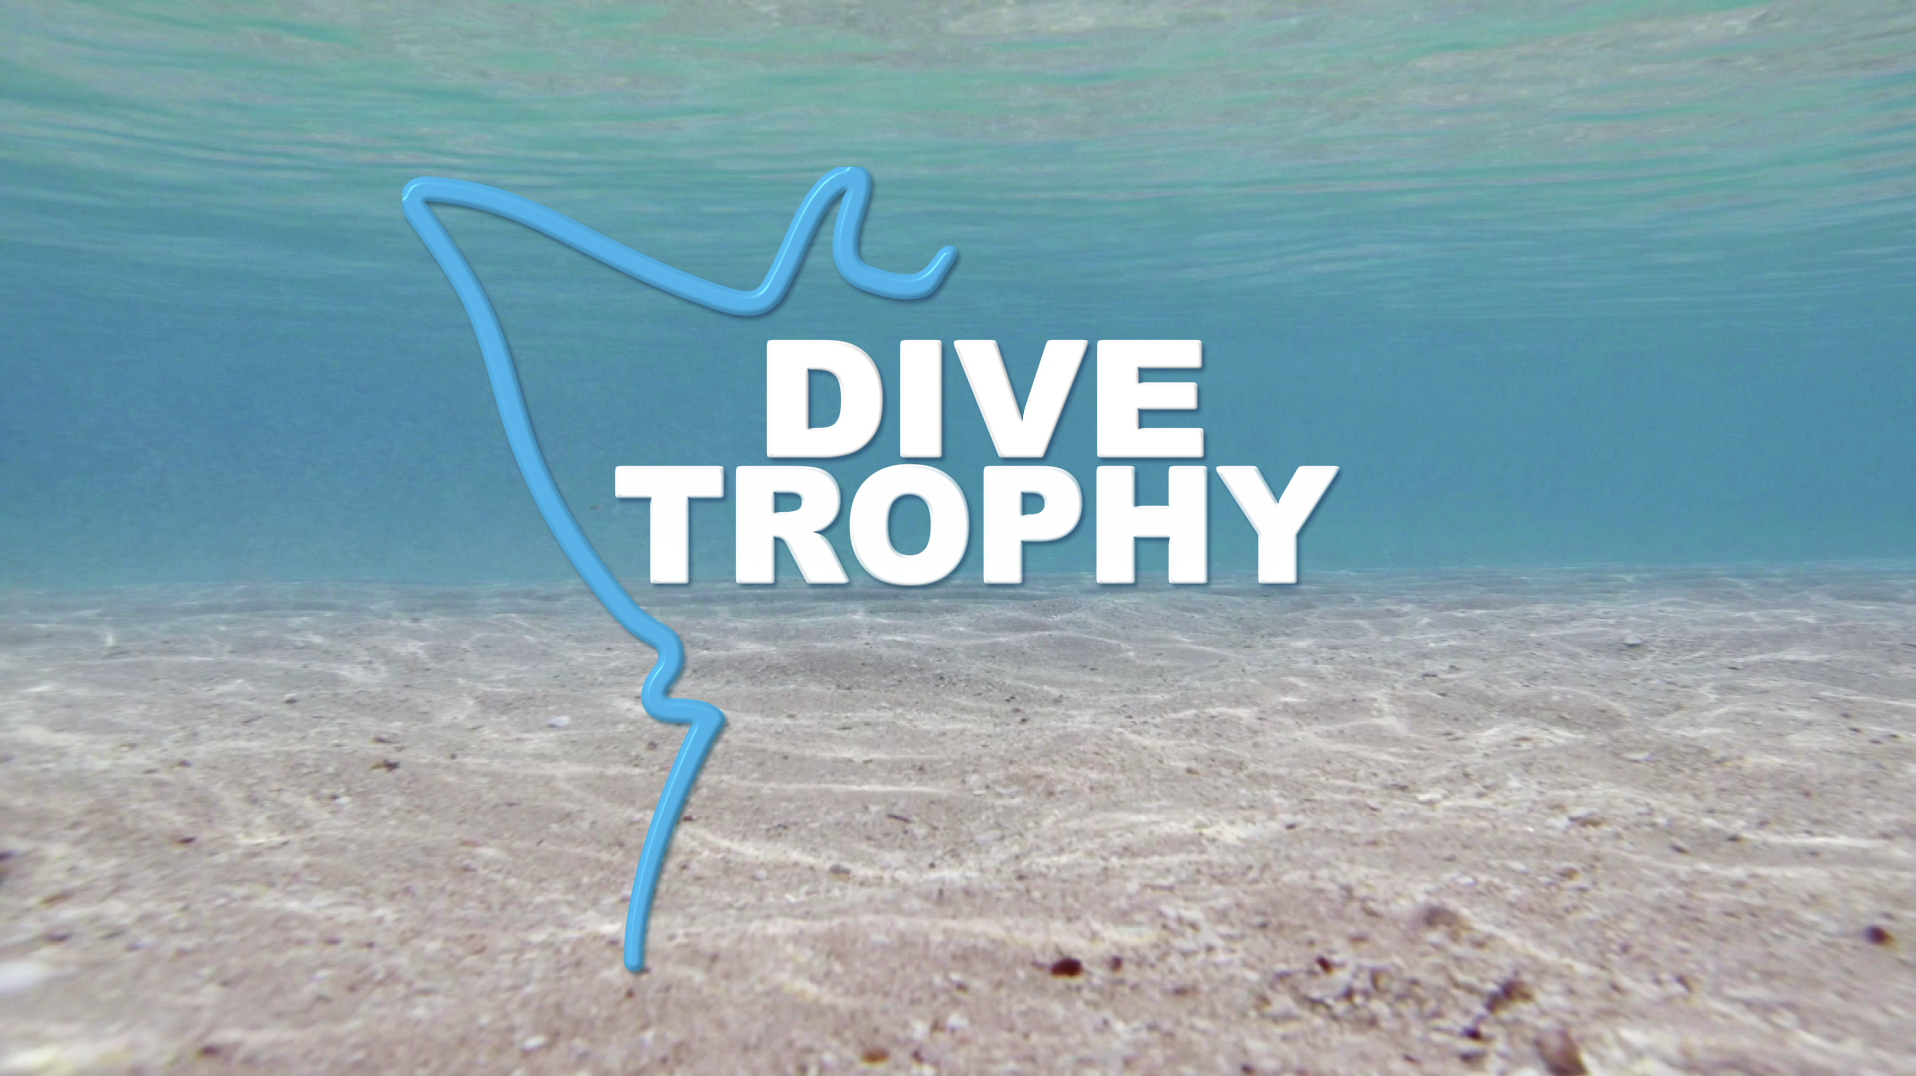 Dive Trophy Michel Briegel Produktion